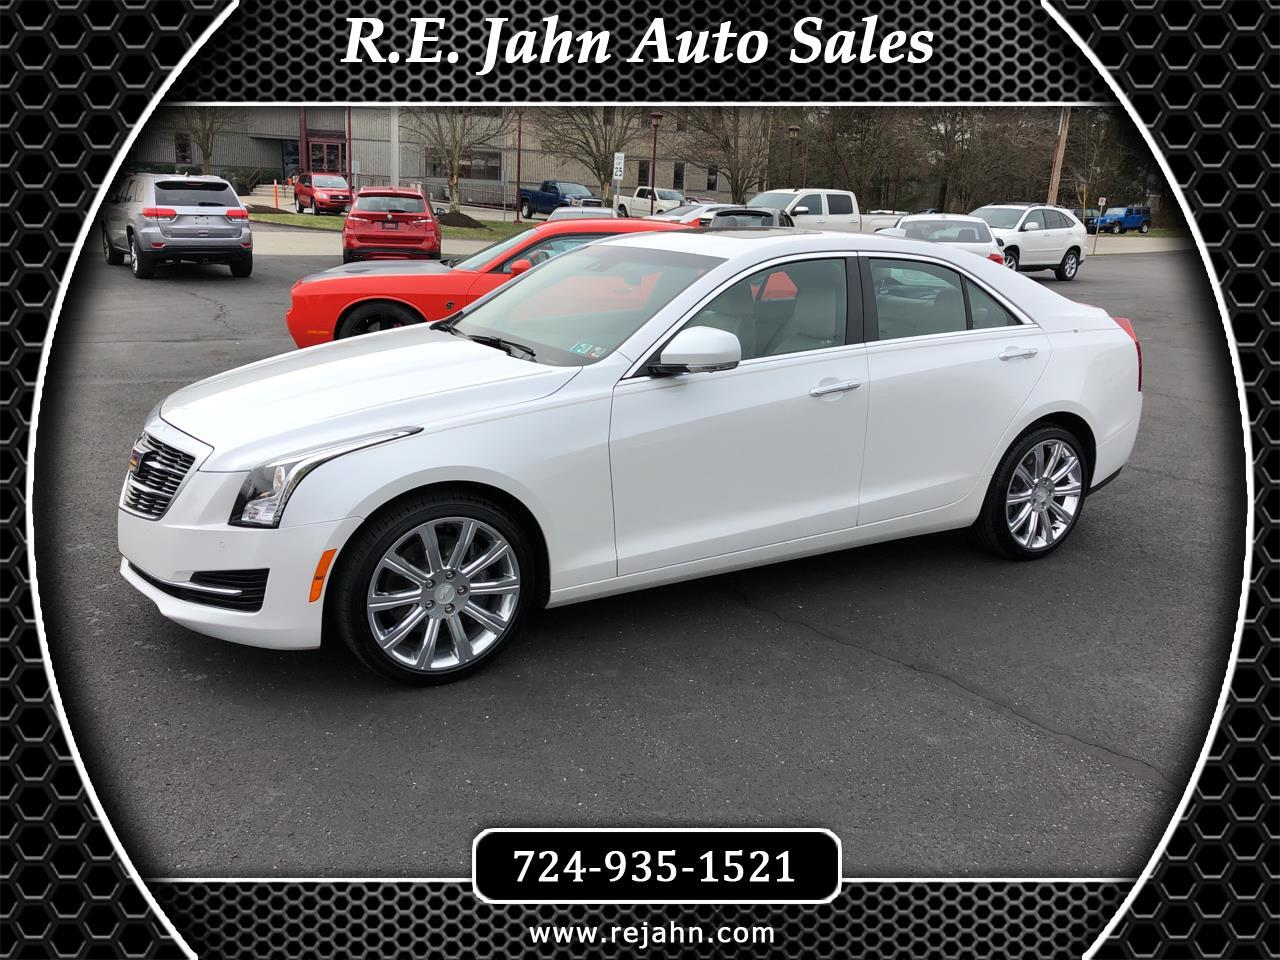 2017 Cadillac ATS Sedan 4dr Sdn 2.0L Luxury AWD